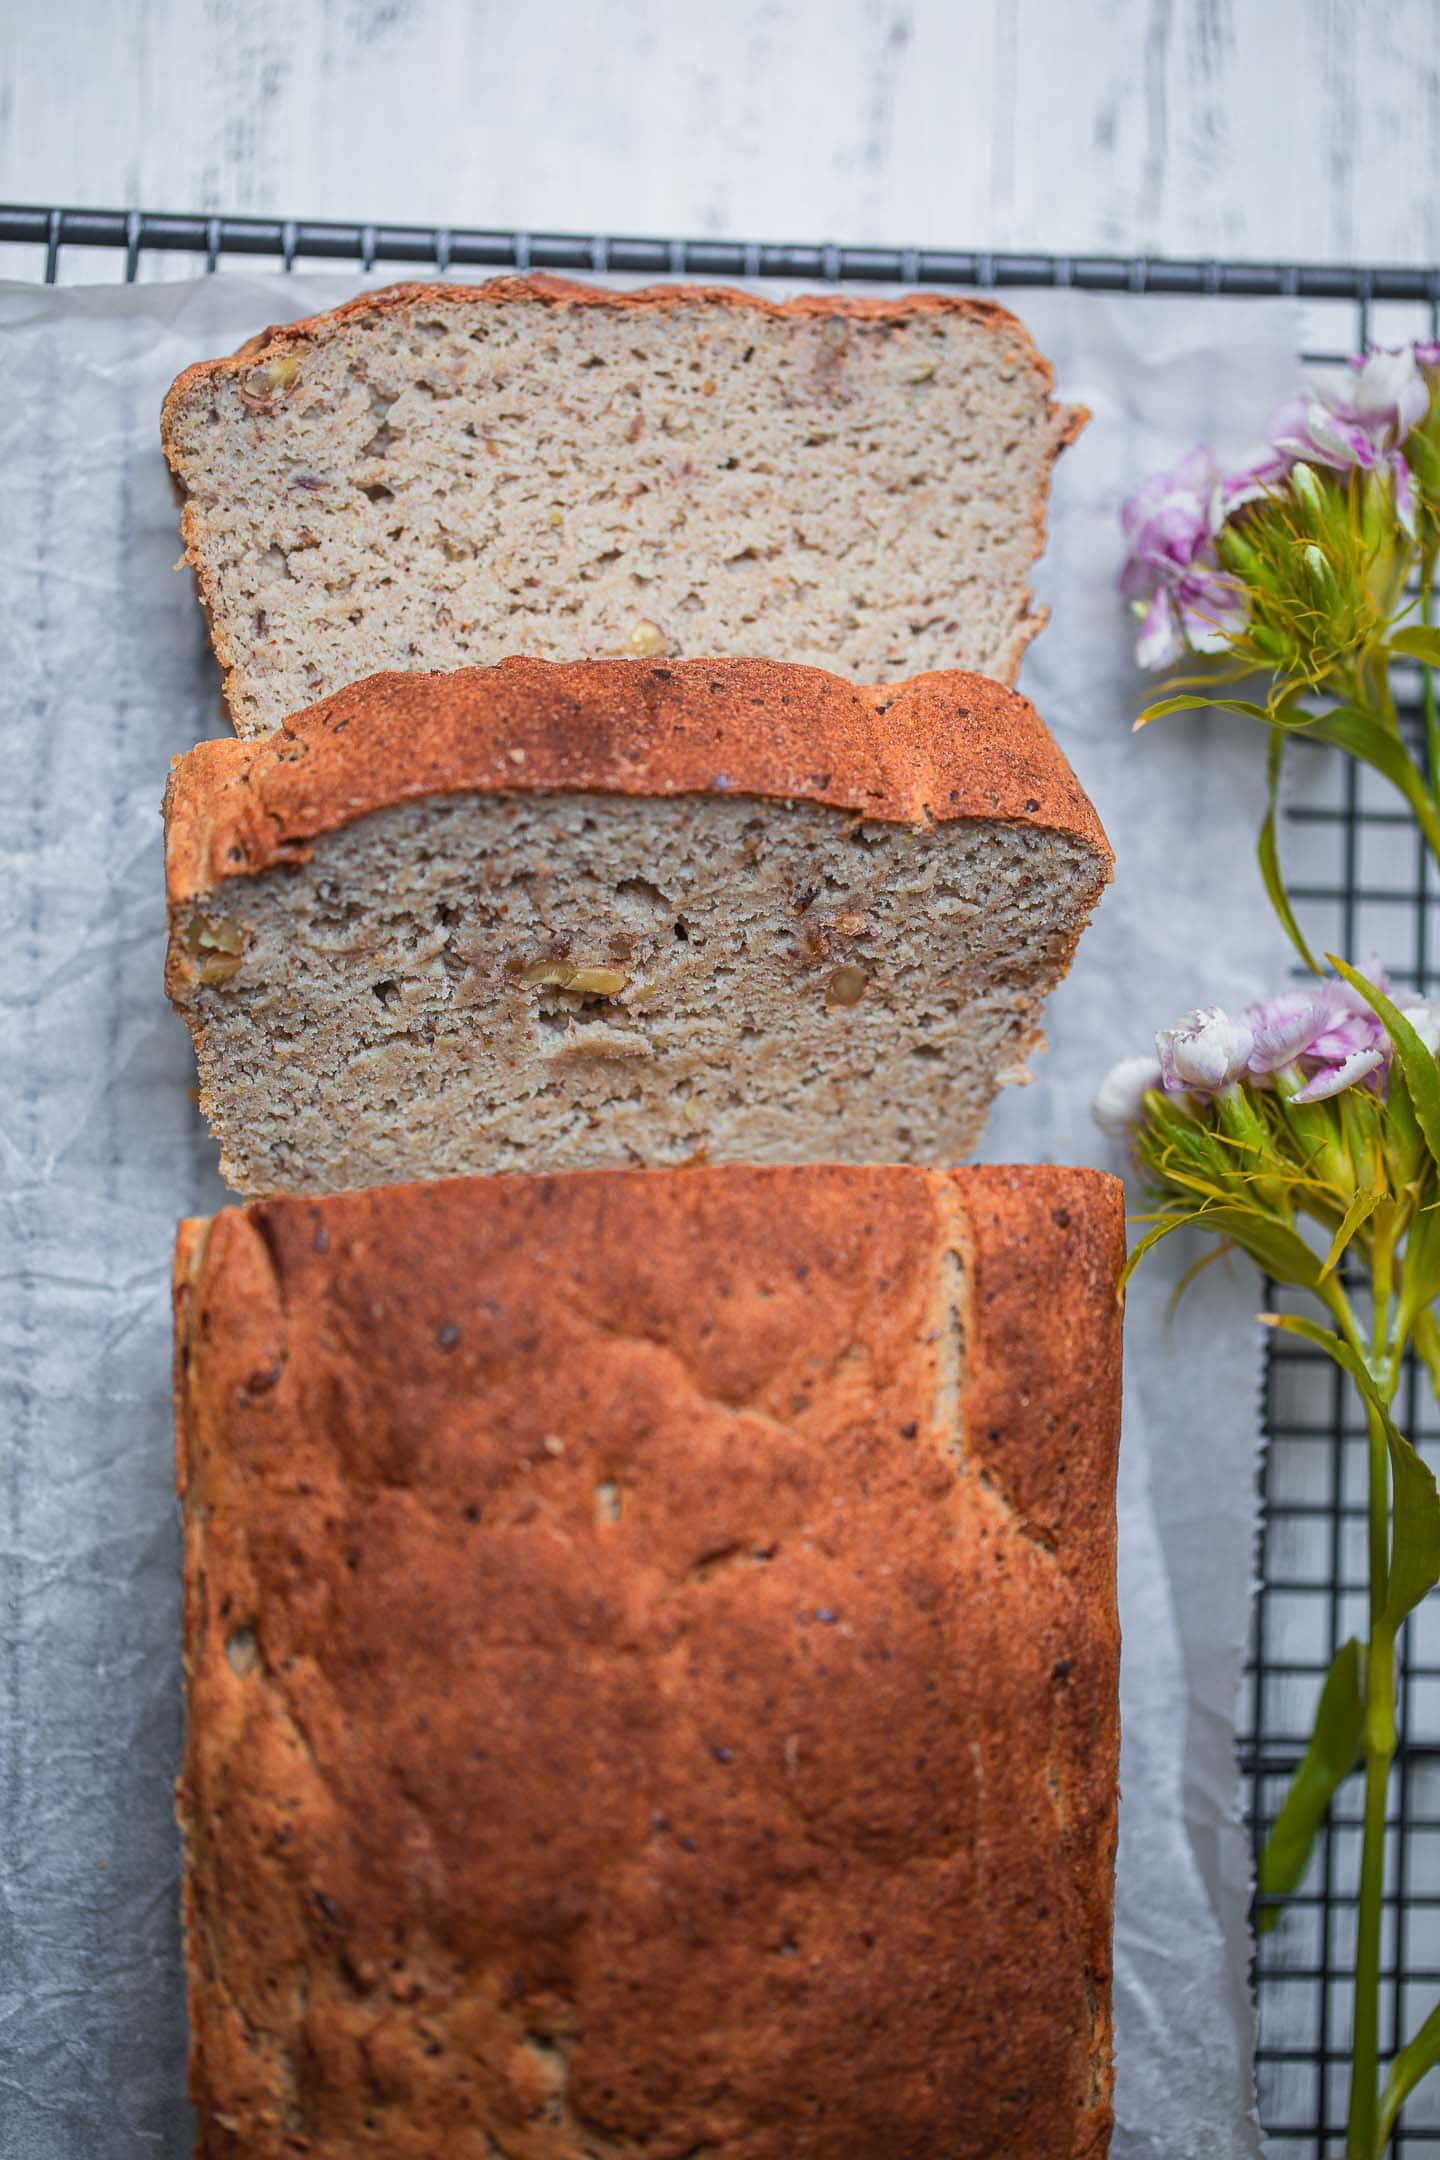 Sliced gluten-free vegan bread with walnuts